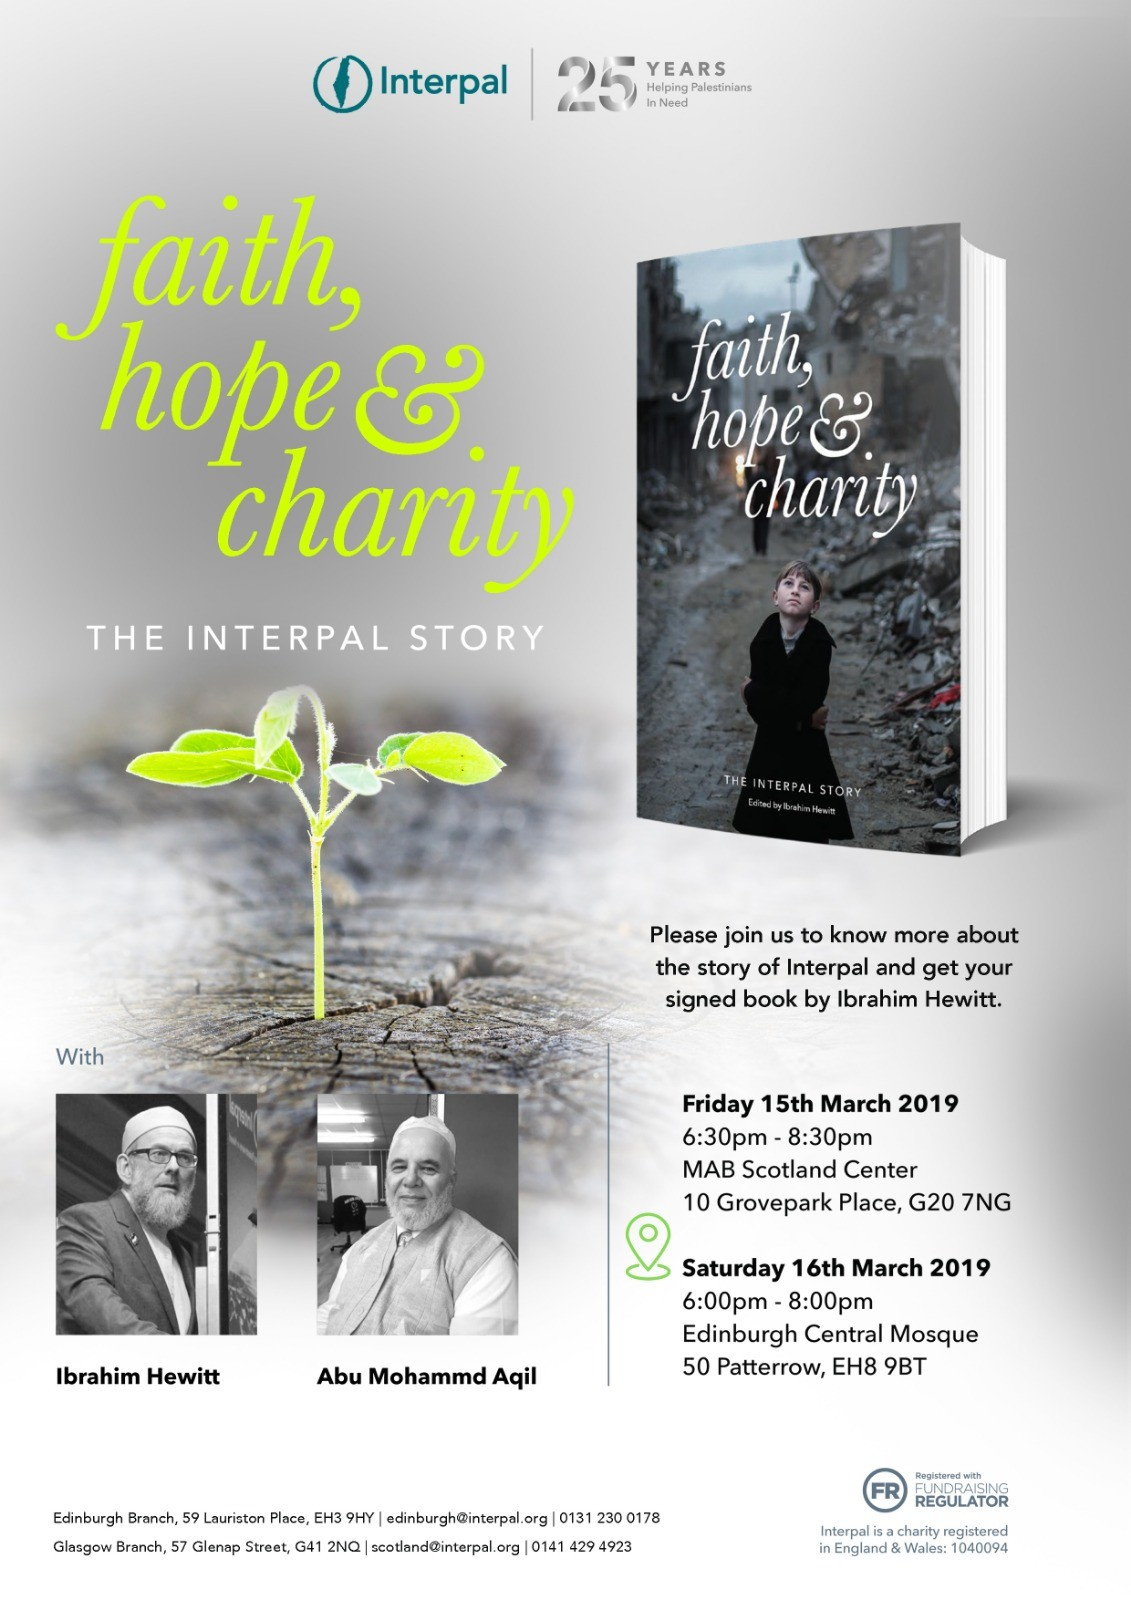 Book Tour – Edinburgh